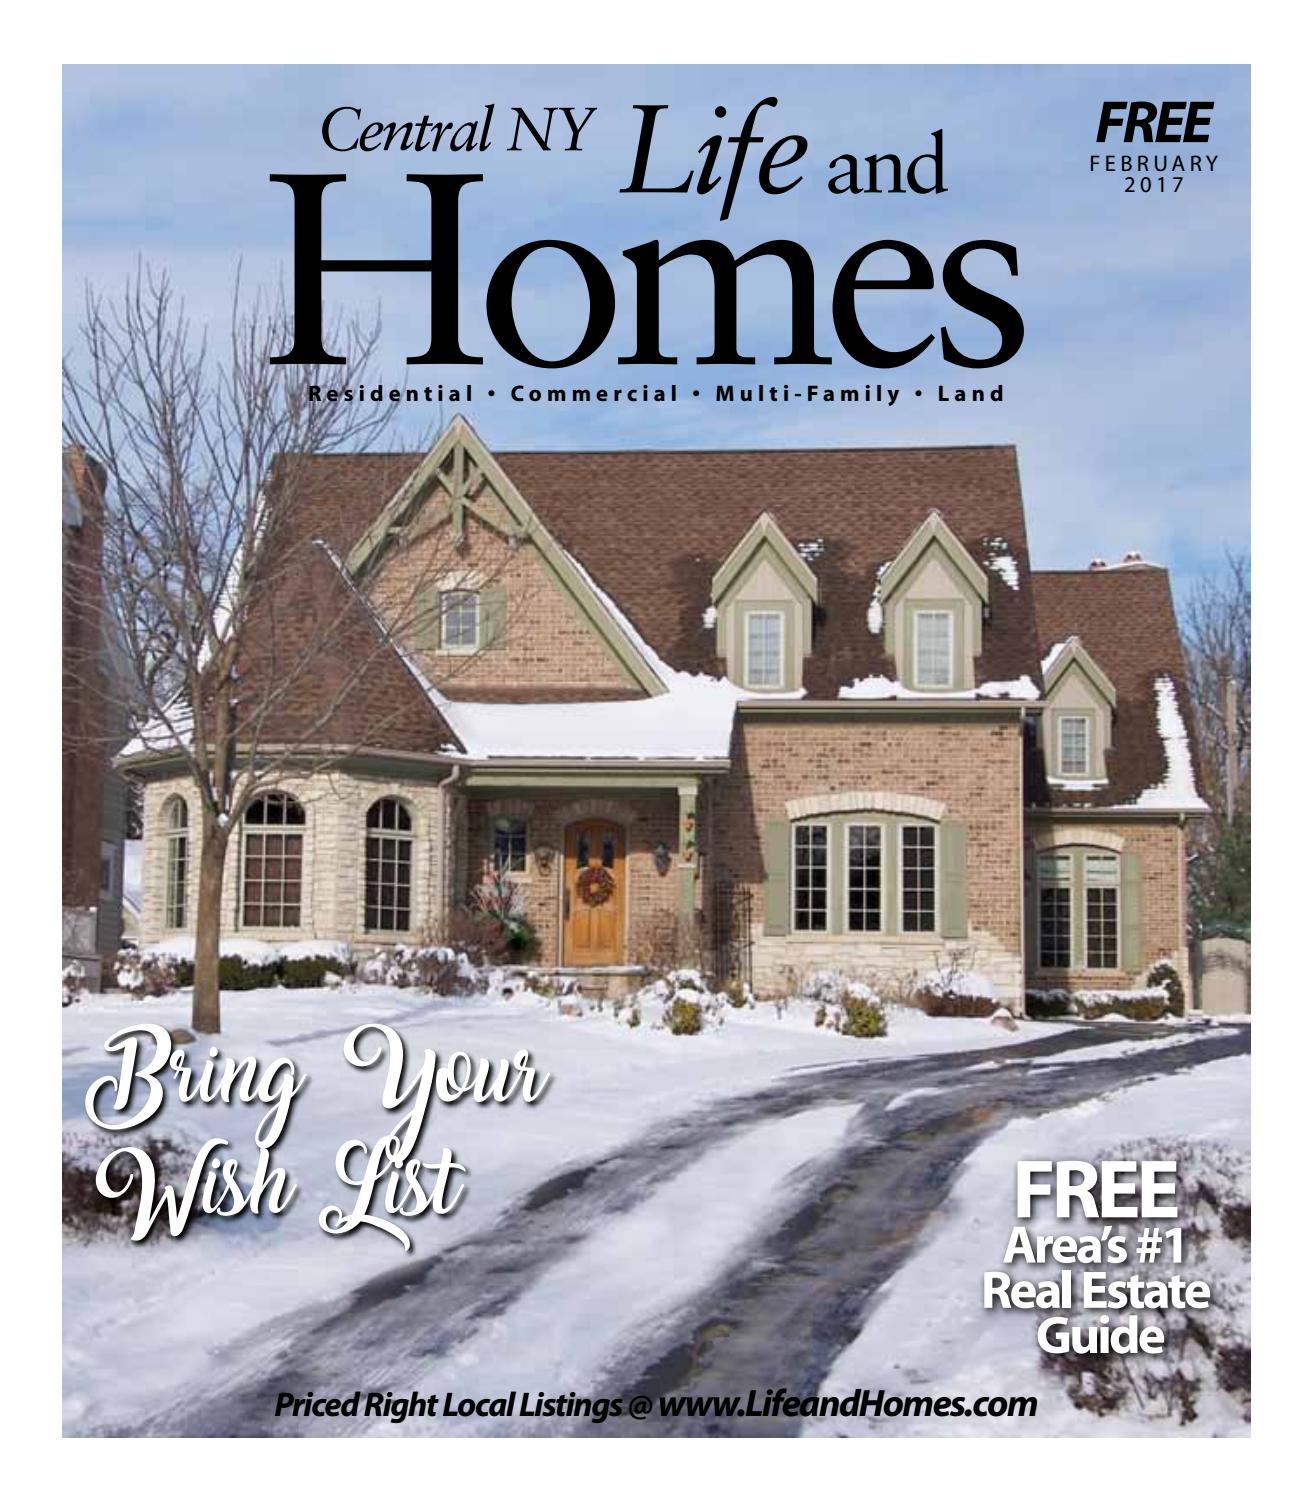 Life and Homes Central New York LifeandHomes offers an